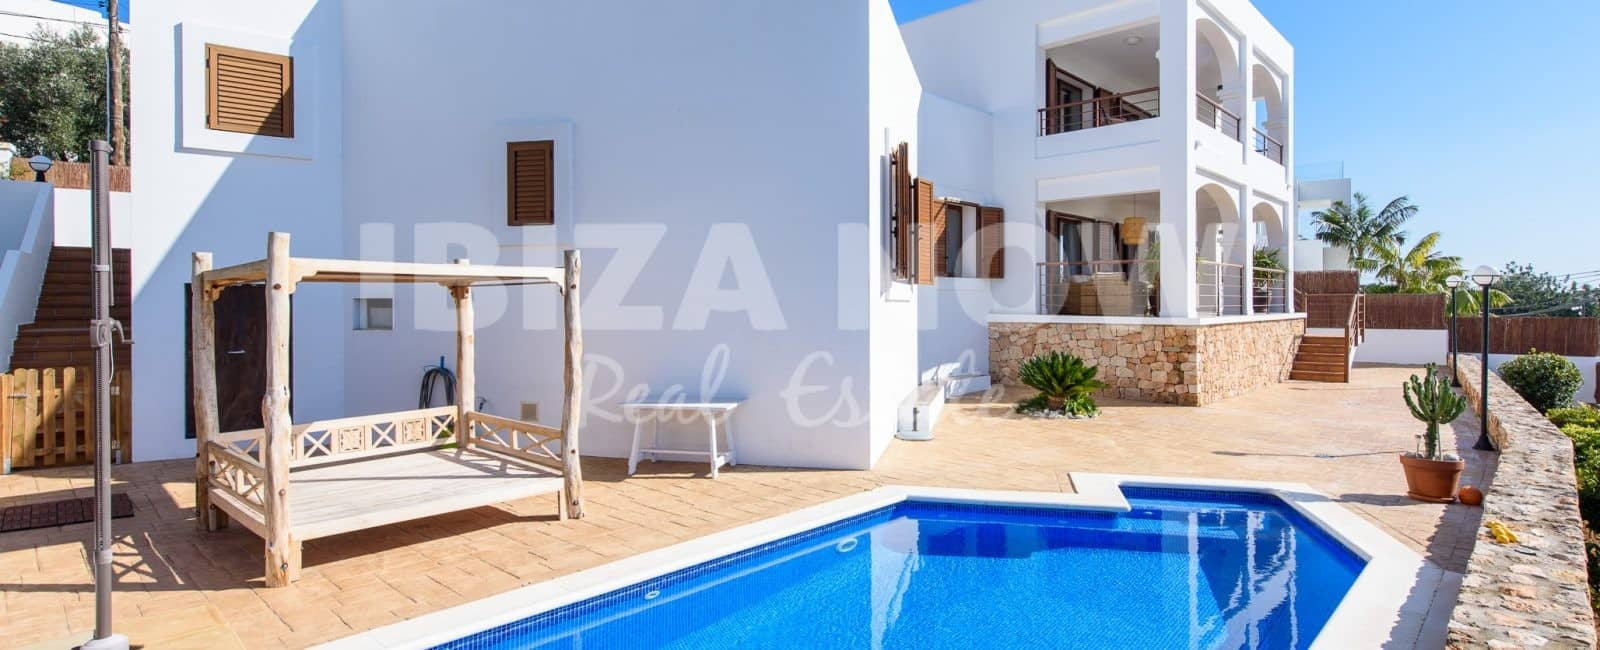 Four bedroom villa with pool for sale in Talamanca, Ibiza